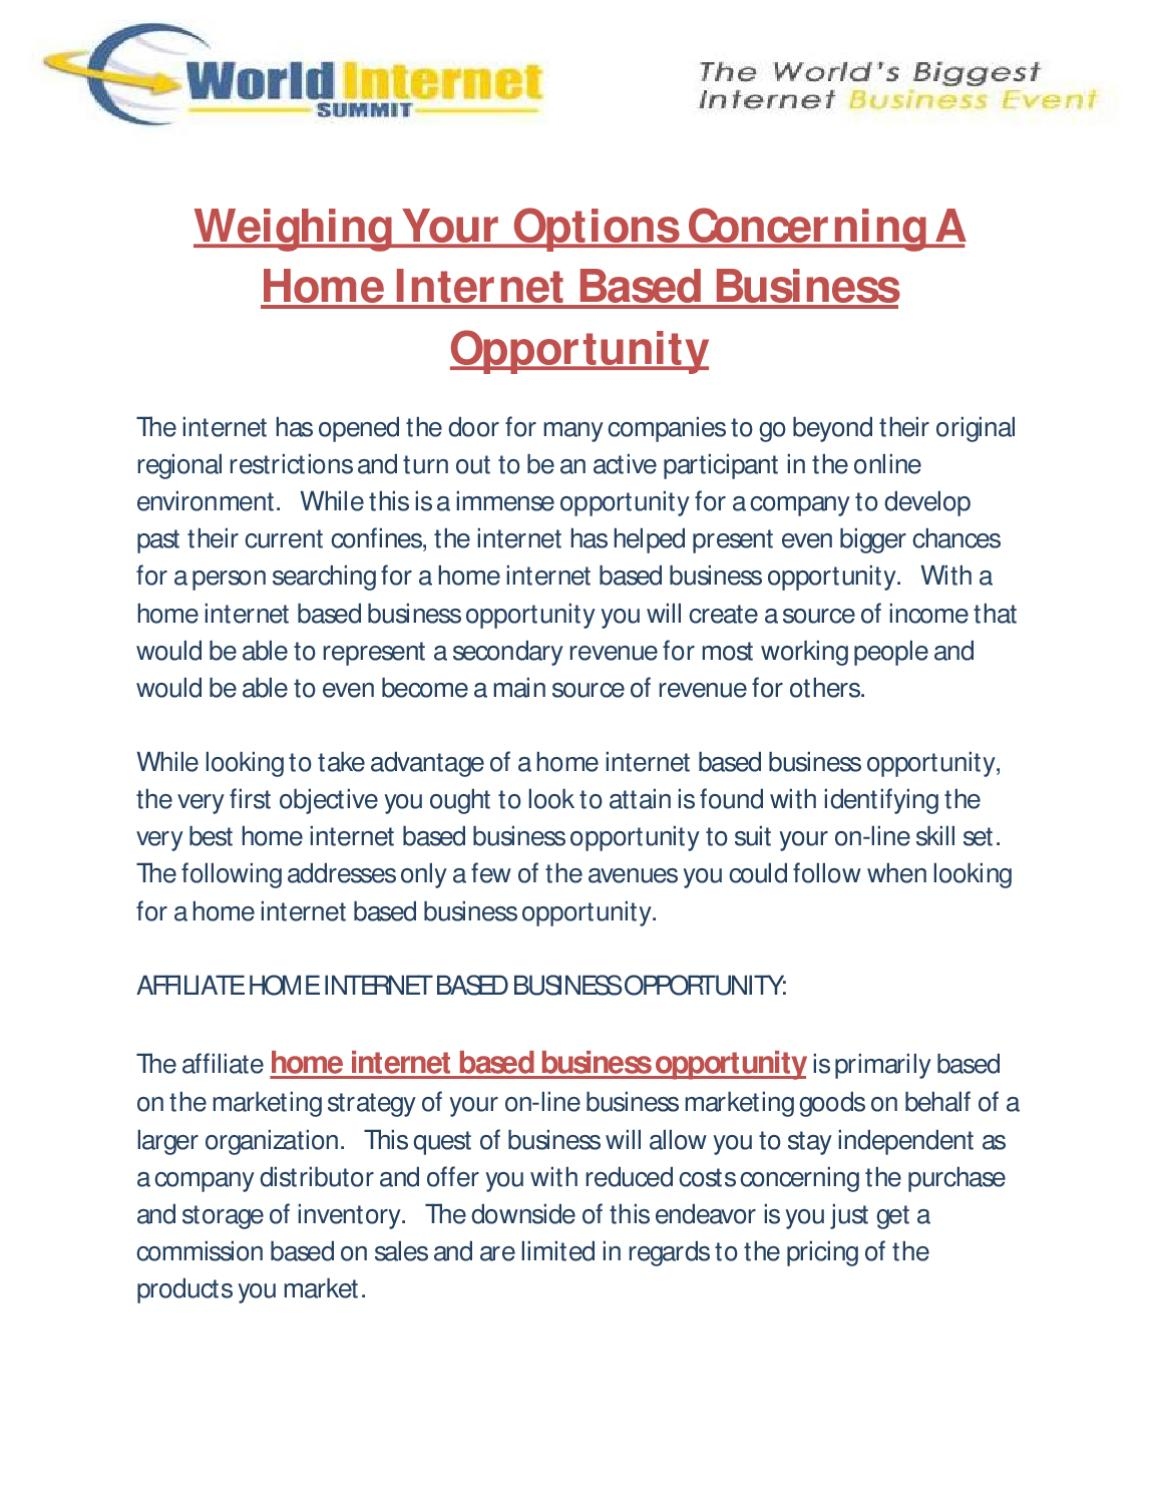 Weighing Your Options Concerning A Home Internet Based Business ...